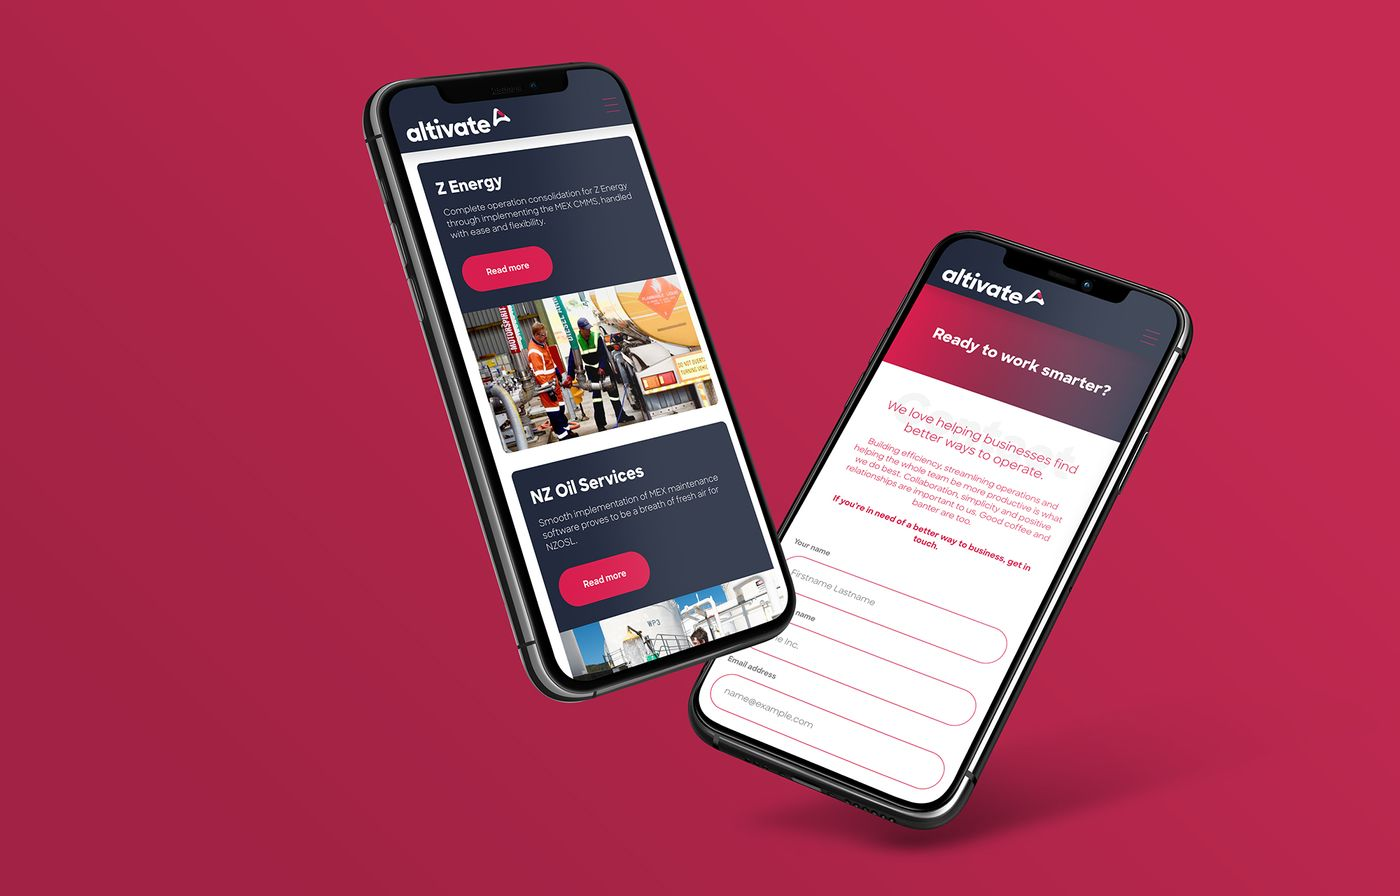 Altivate website on mobile phones